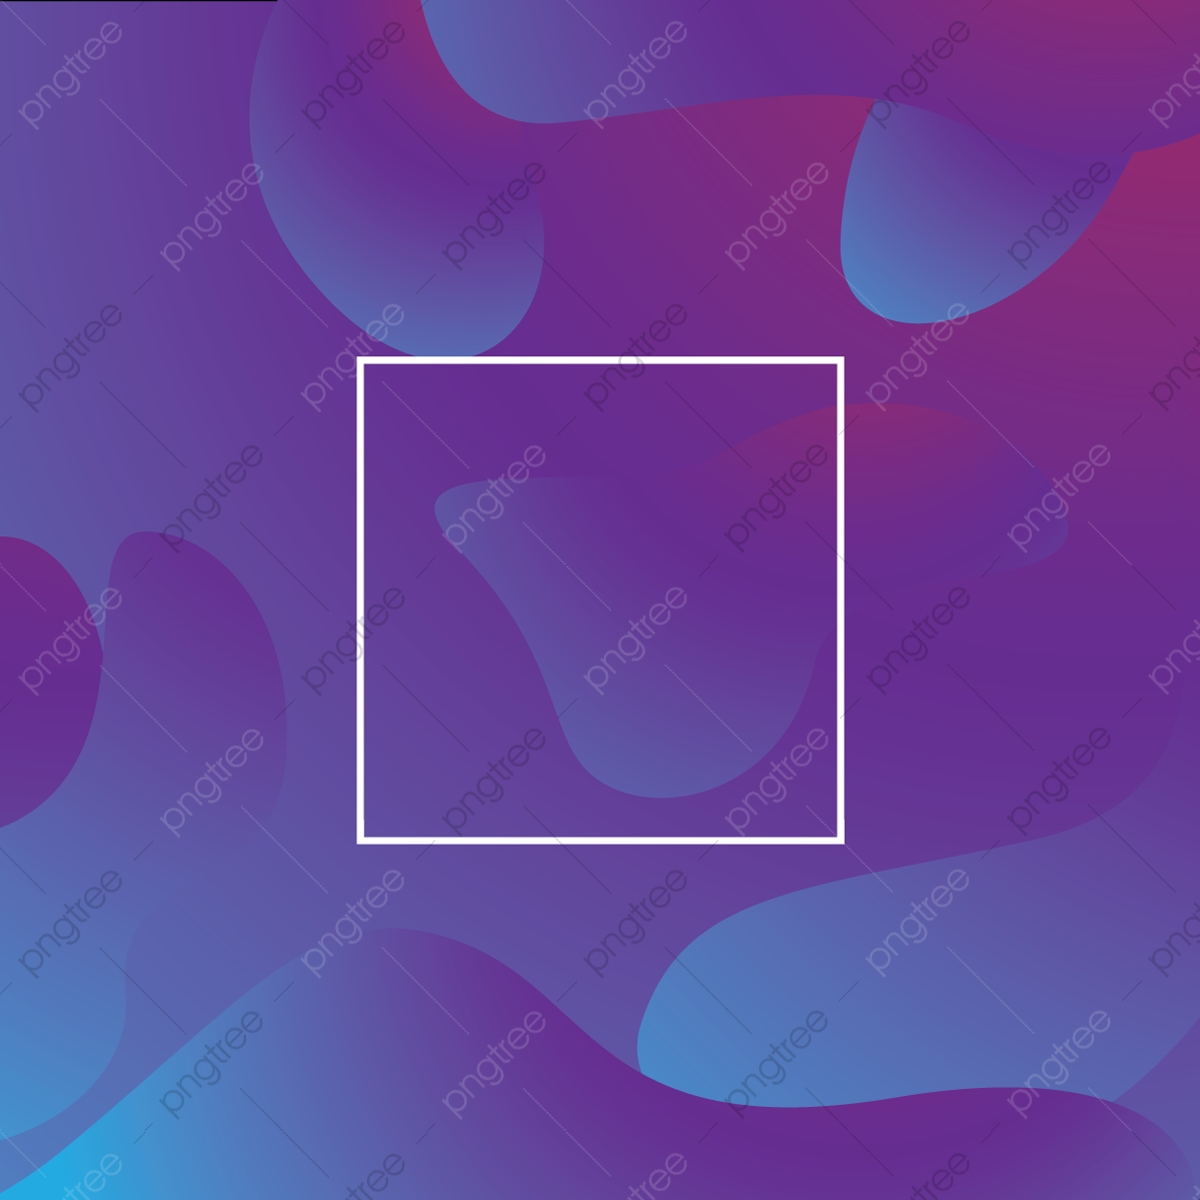 Geometric Abstract Background Vector Purple Purple